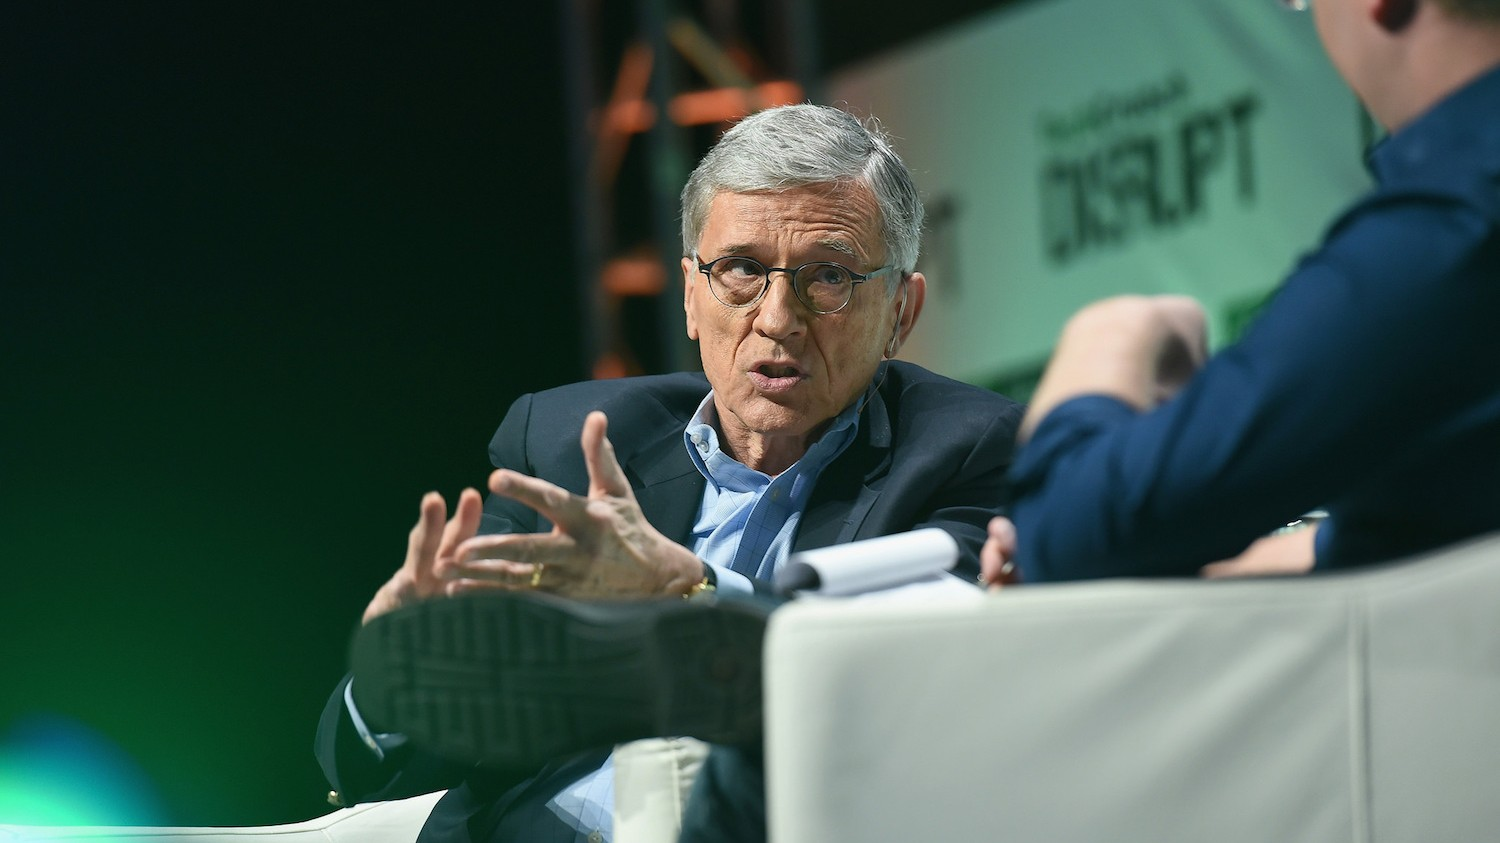 FCC Postpones Vote on Set-Top Box Reform in a Blow to Chairman Wheeler